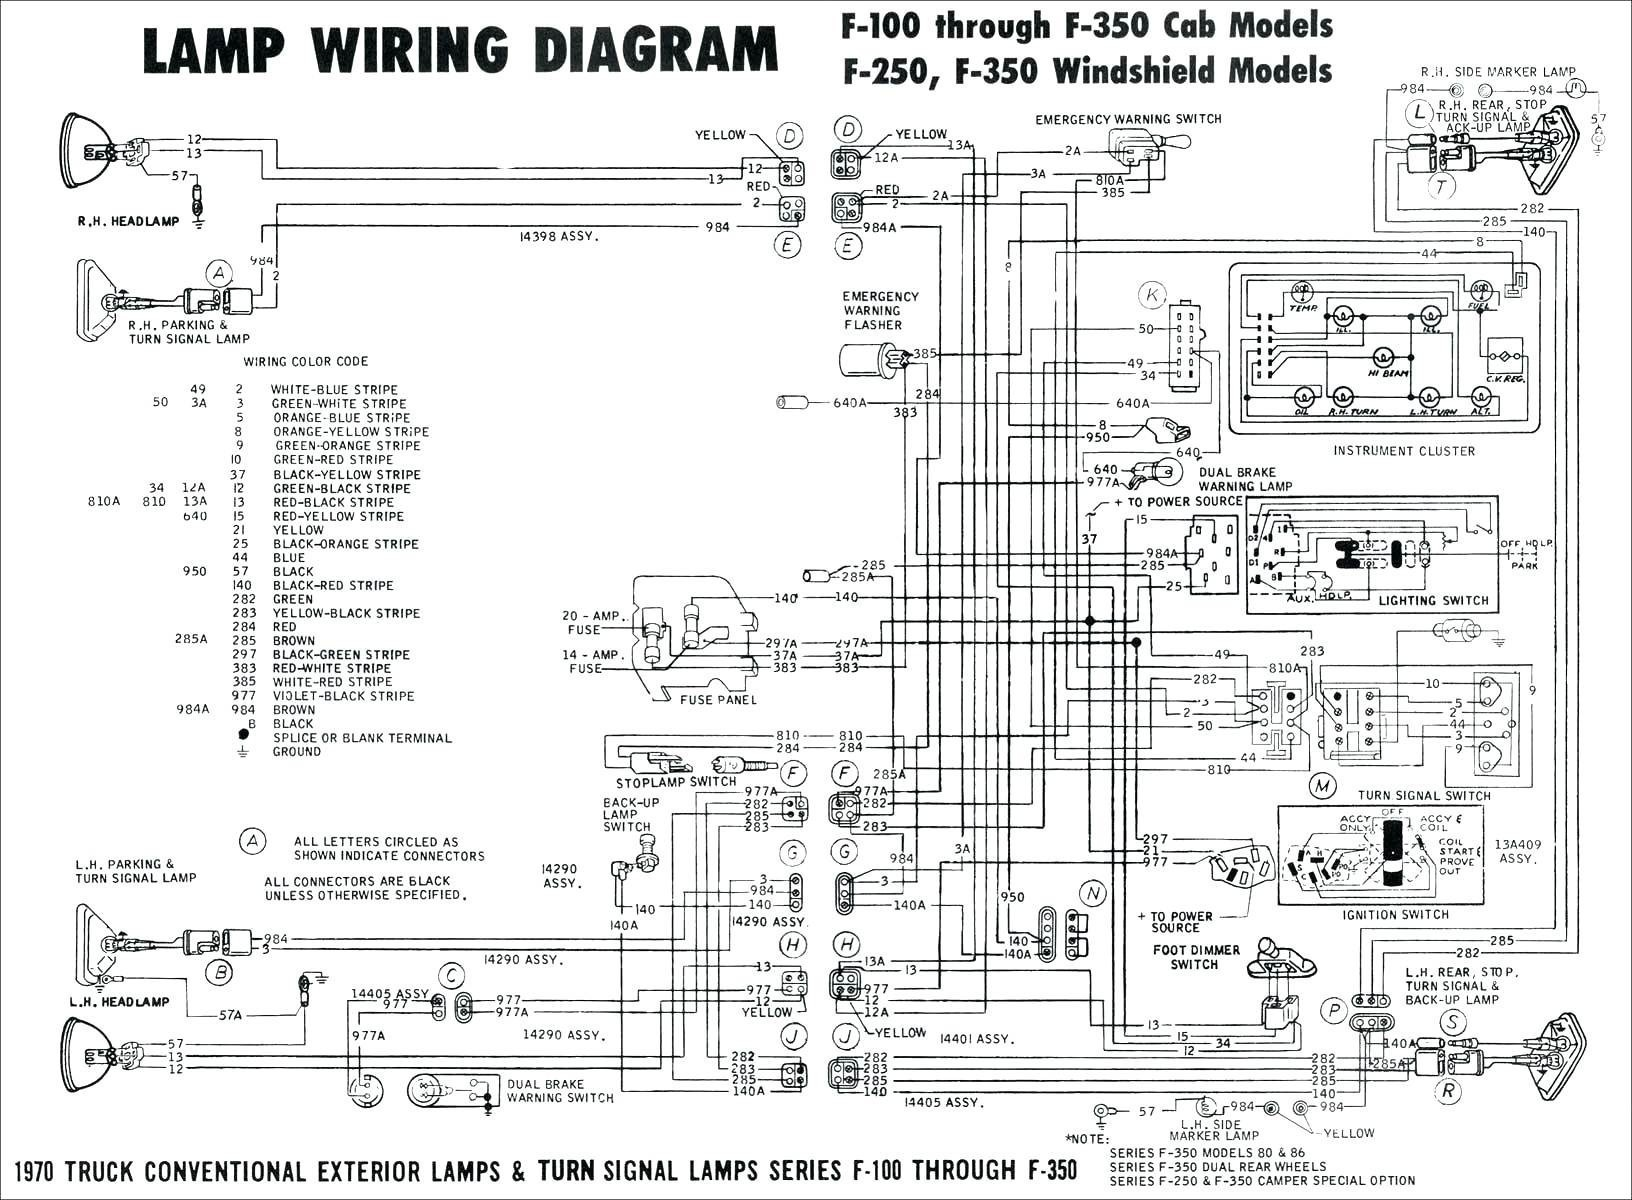 1998 Jeep Cherokee Light Diagram - Wiring Schematics Jeep Grand Cherokee Wiring Schematic on